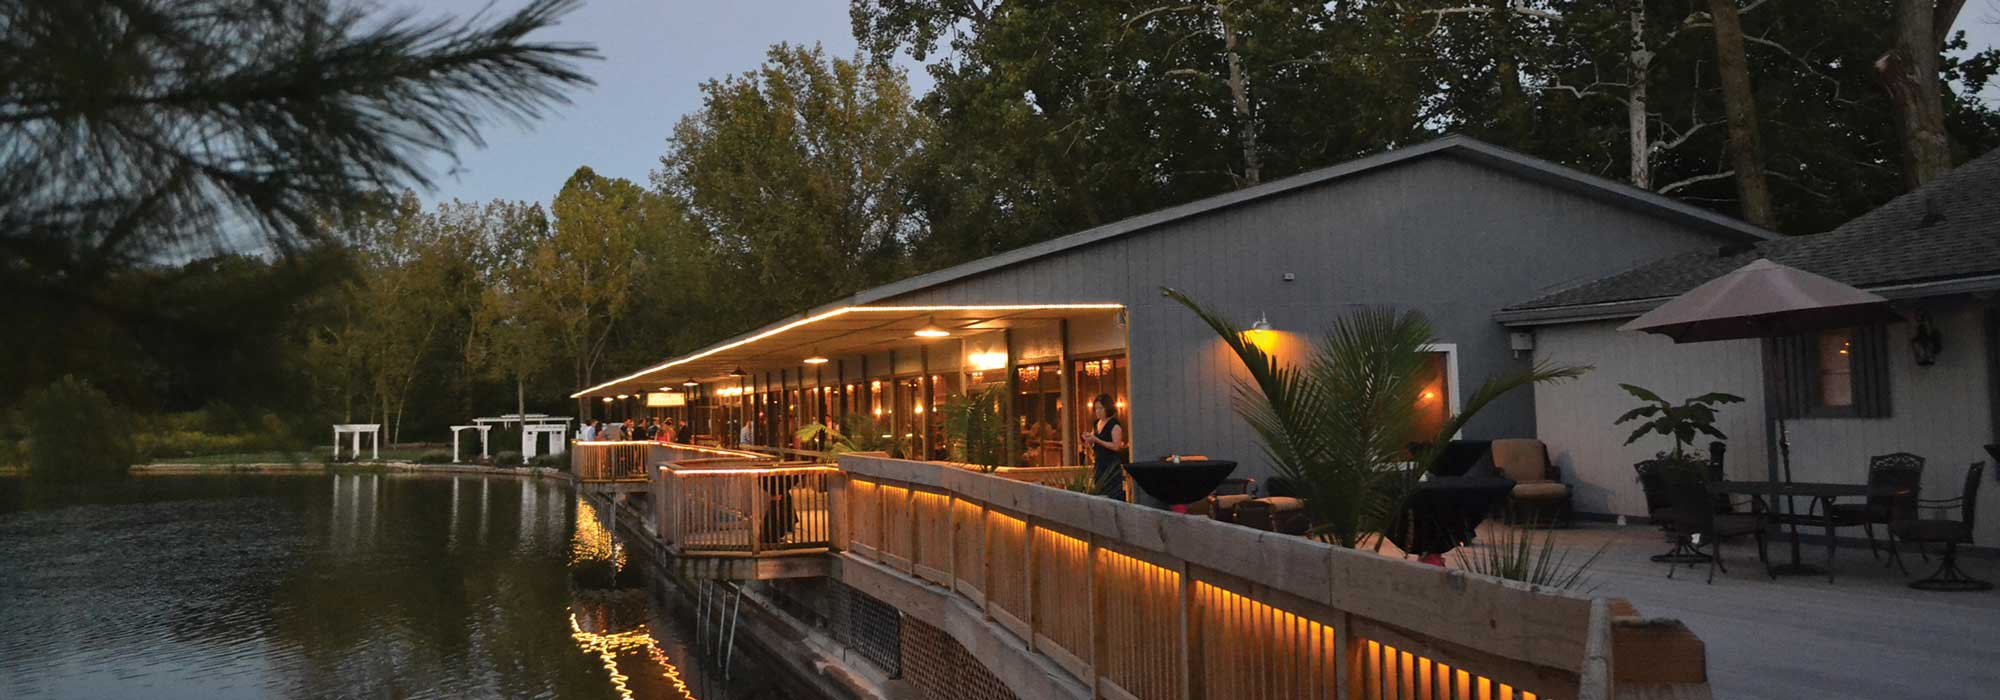 The lakefront event, The Lodge at The Willows, is a unique evening event venue